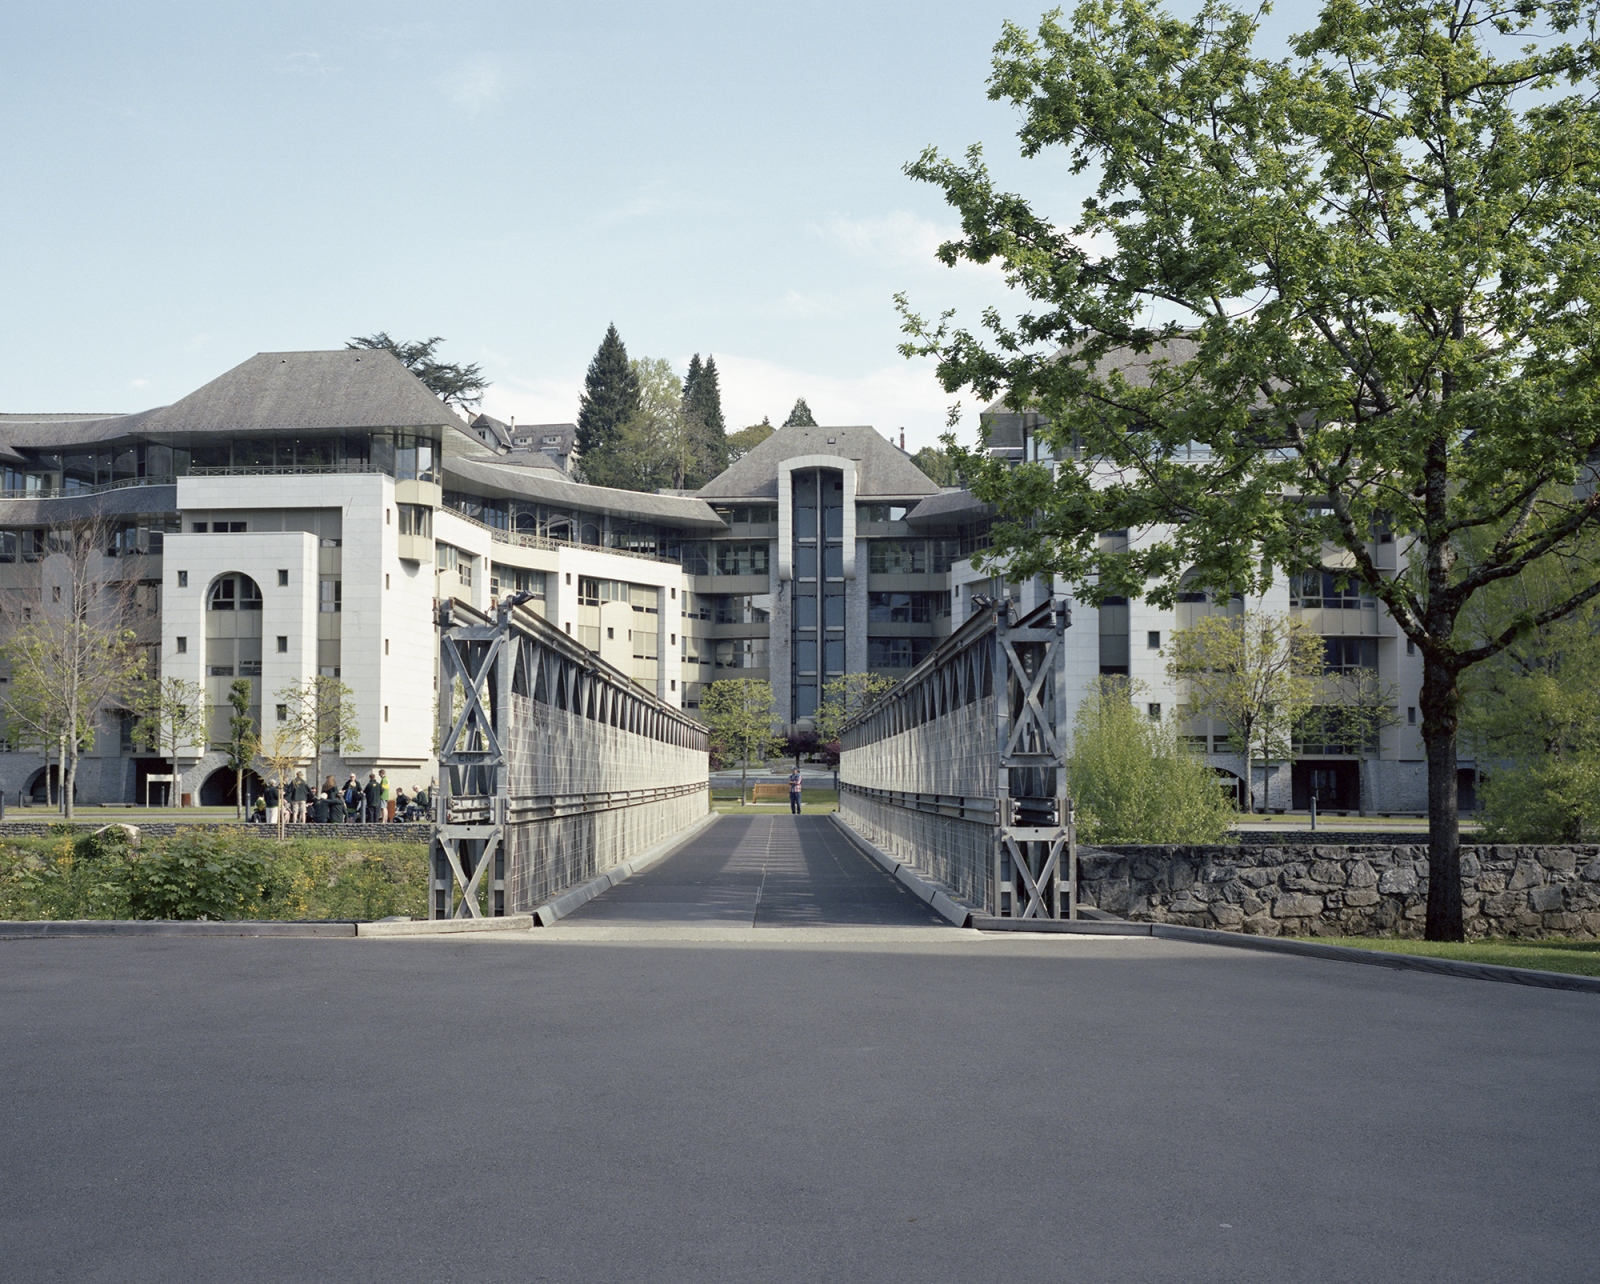 France,Lourdes. A view of a building of the Sanctuary of our Lady of Lourdes. Every year 5 milions of believers visit the sanctuary. The religious tourist is the main income of the whole area.